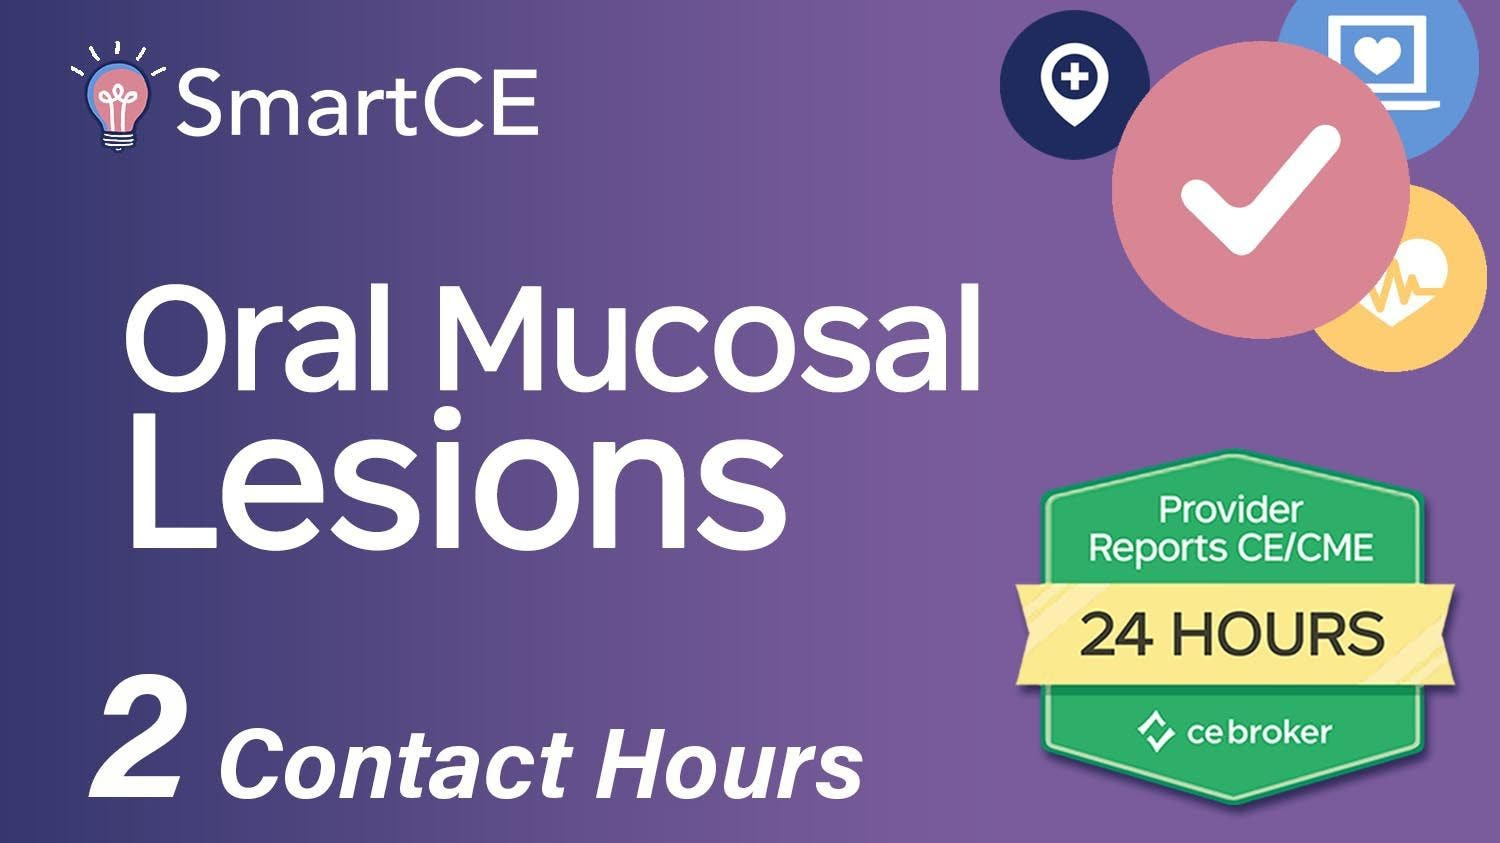 An Overview of Oral Mucosal Lesions - 2 Contact Hours/20-762206